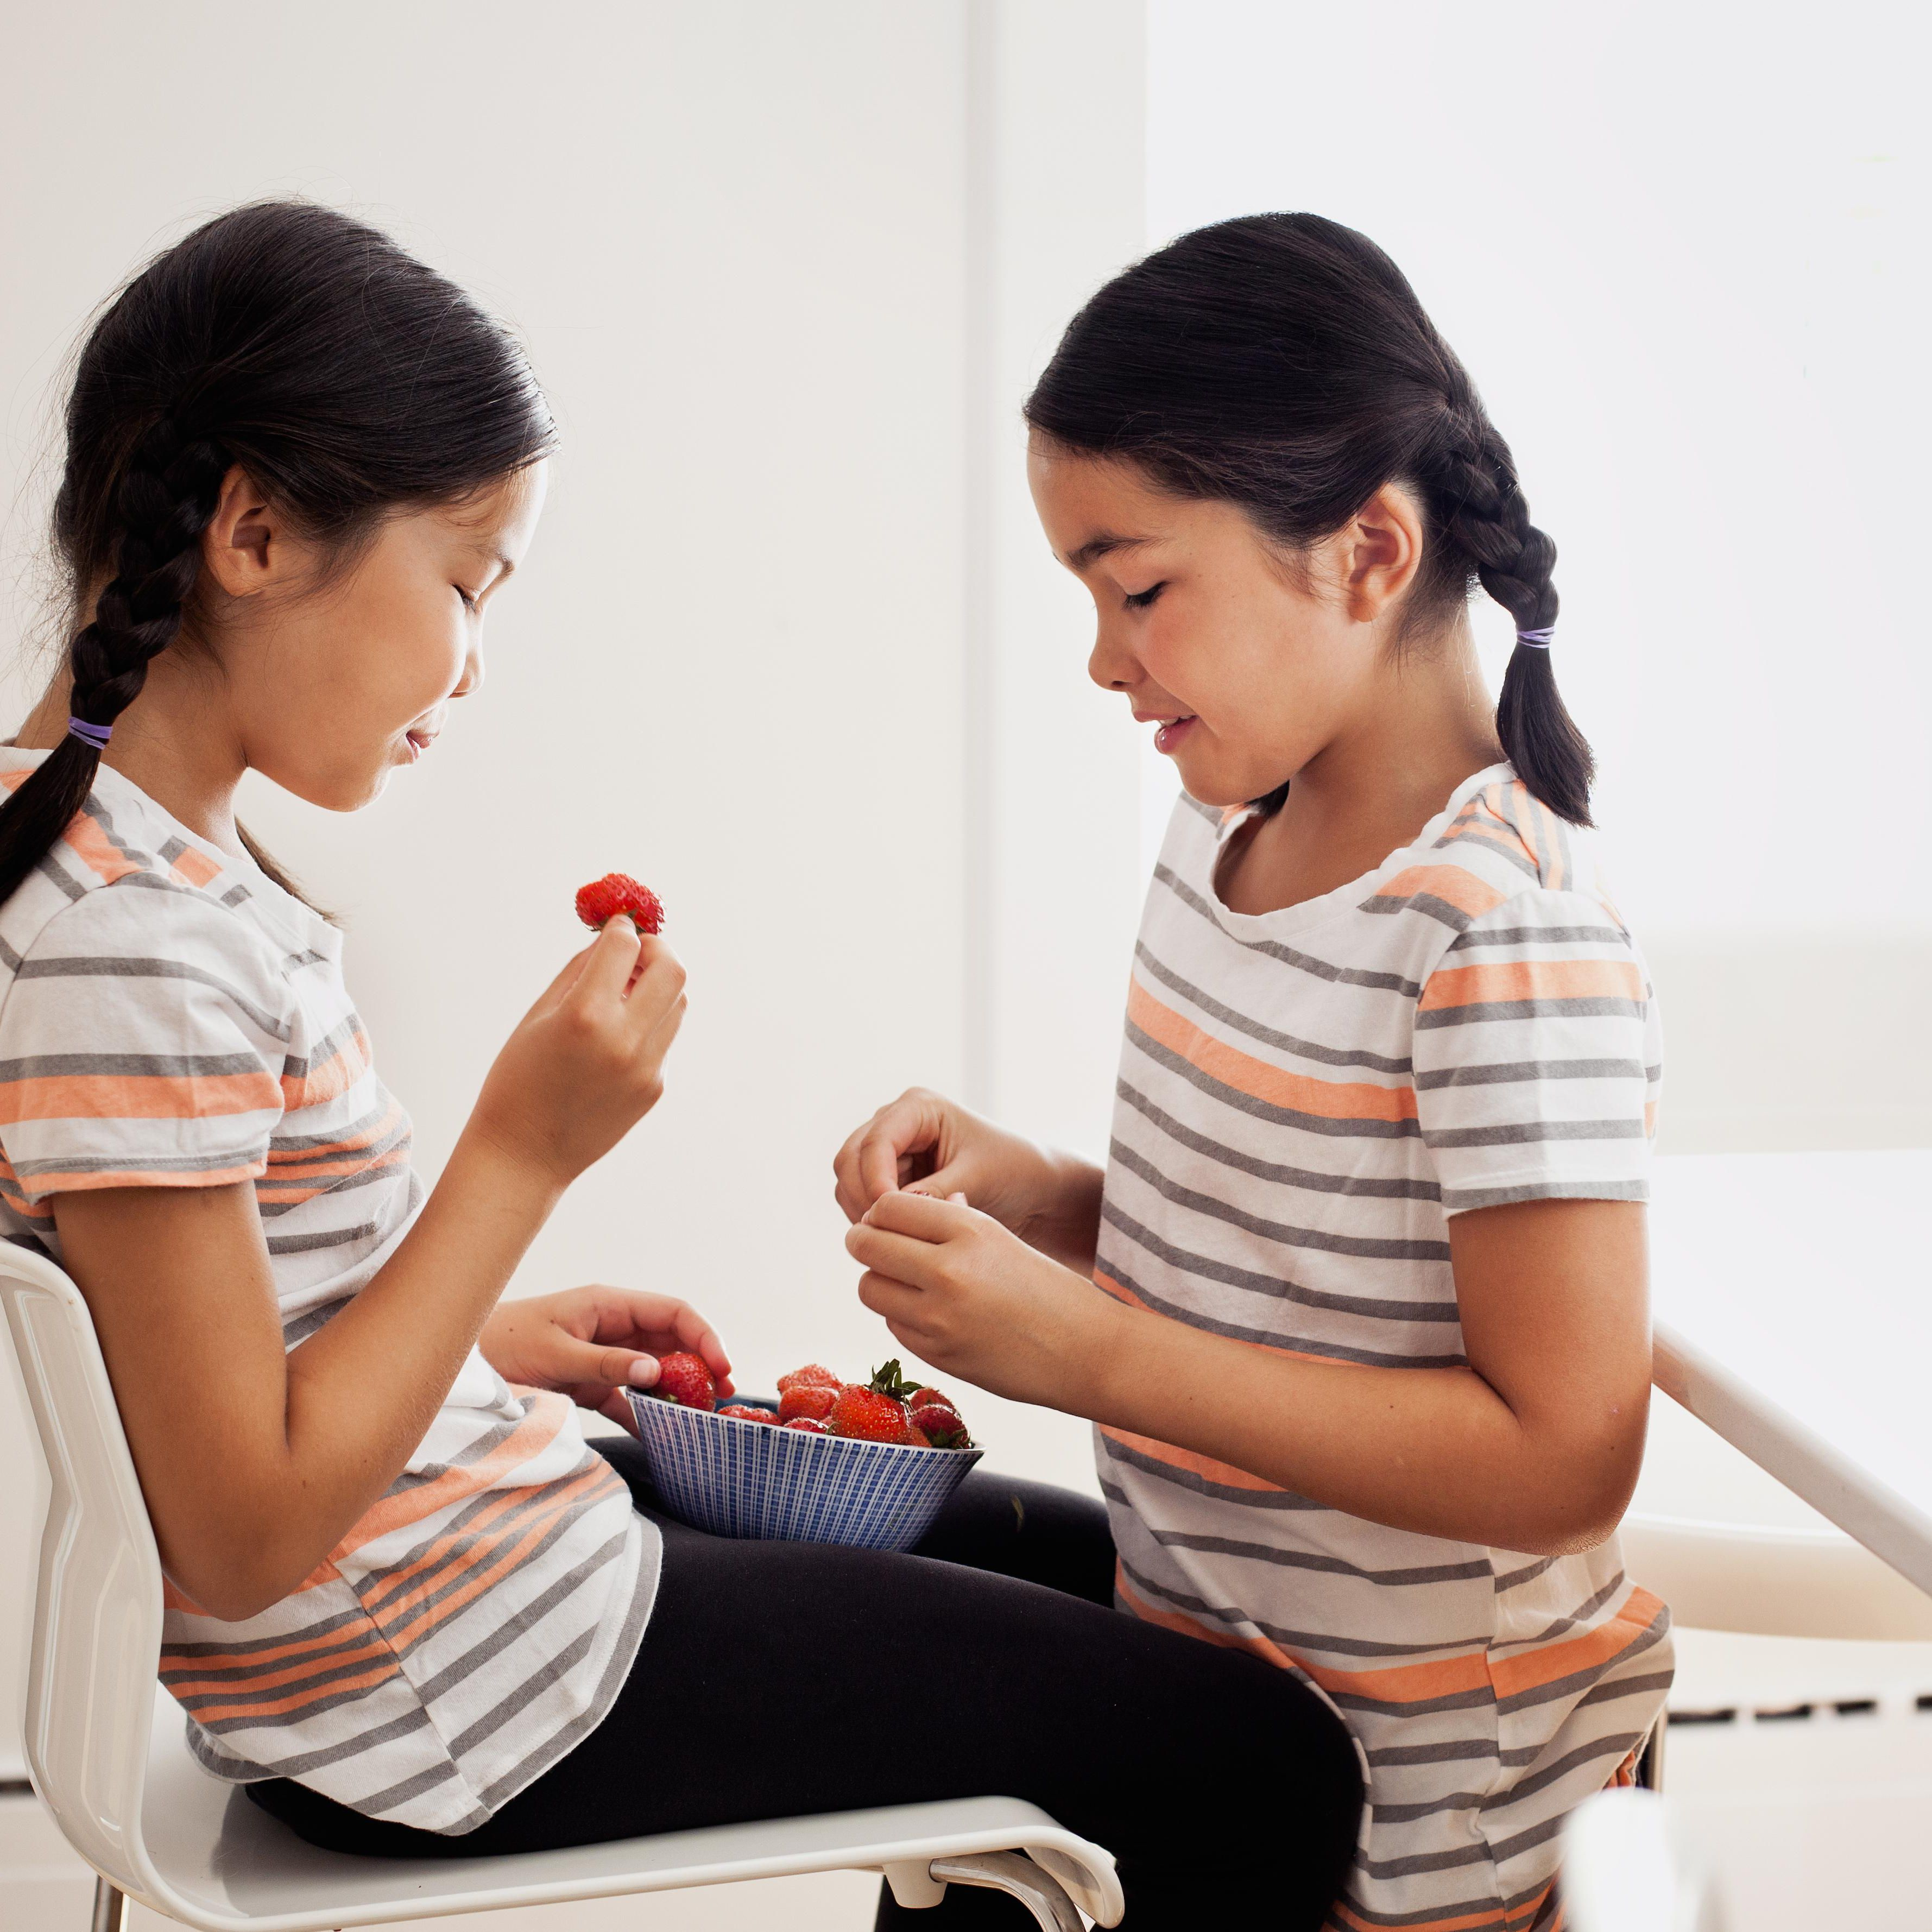 Does Birth Order Affect Twins?